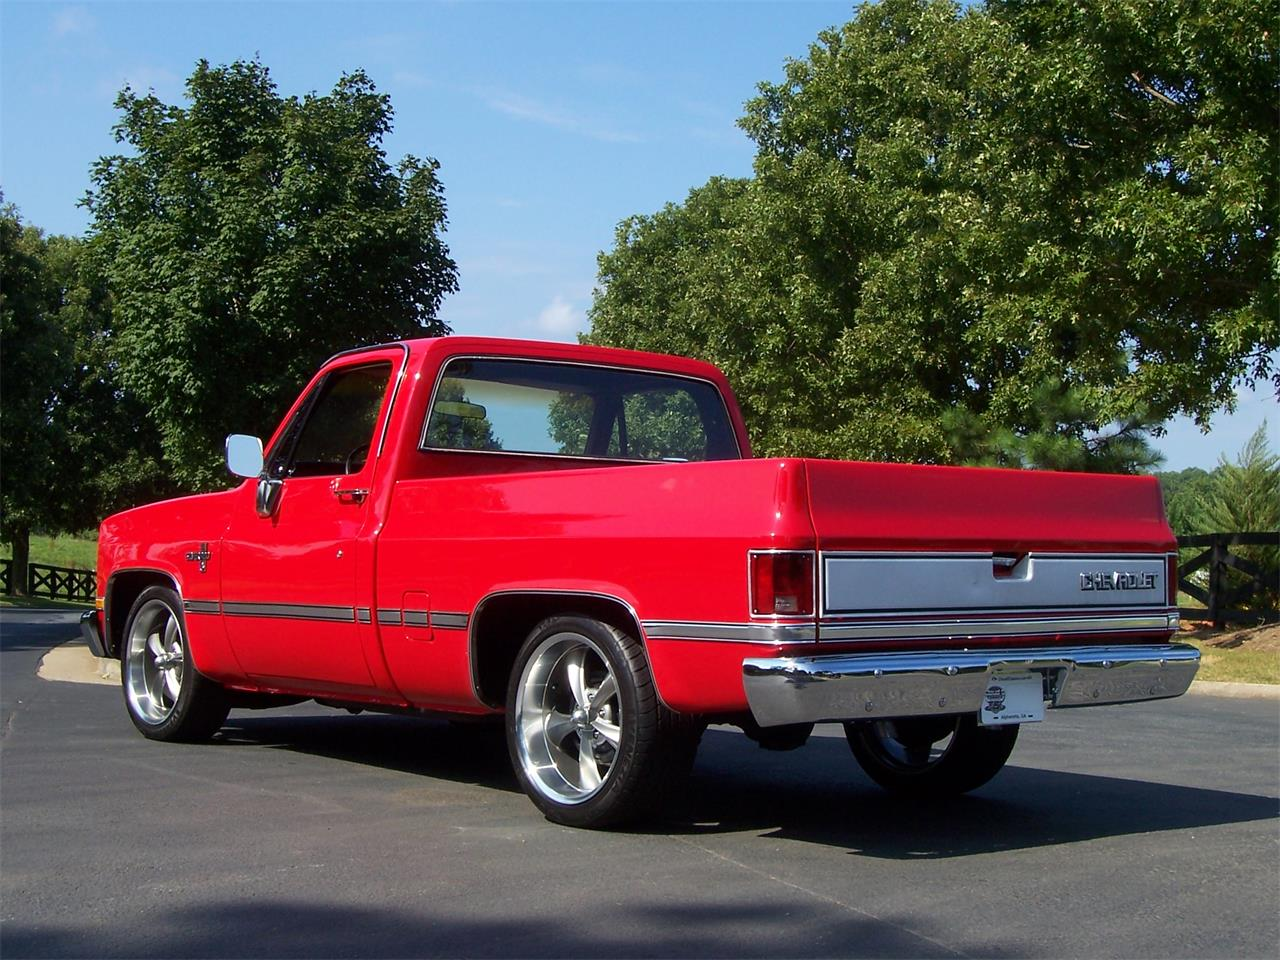 1985 Chevrolet C/K 10 for sale in Alpharetta, GA – photo 2